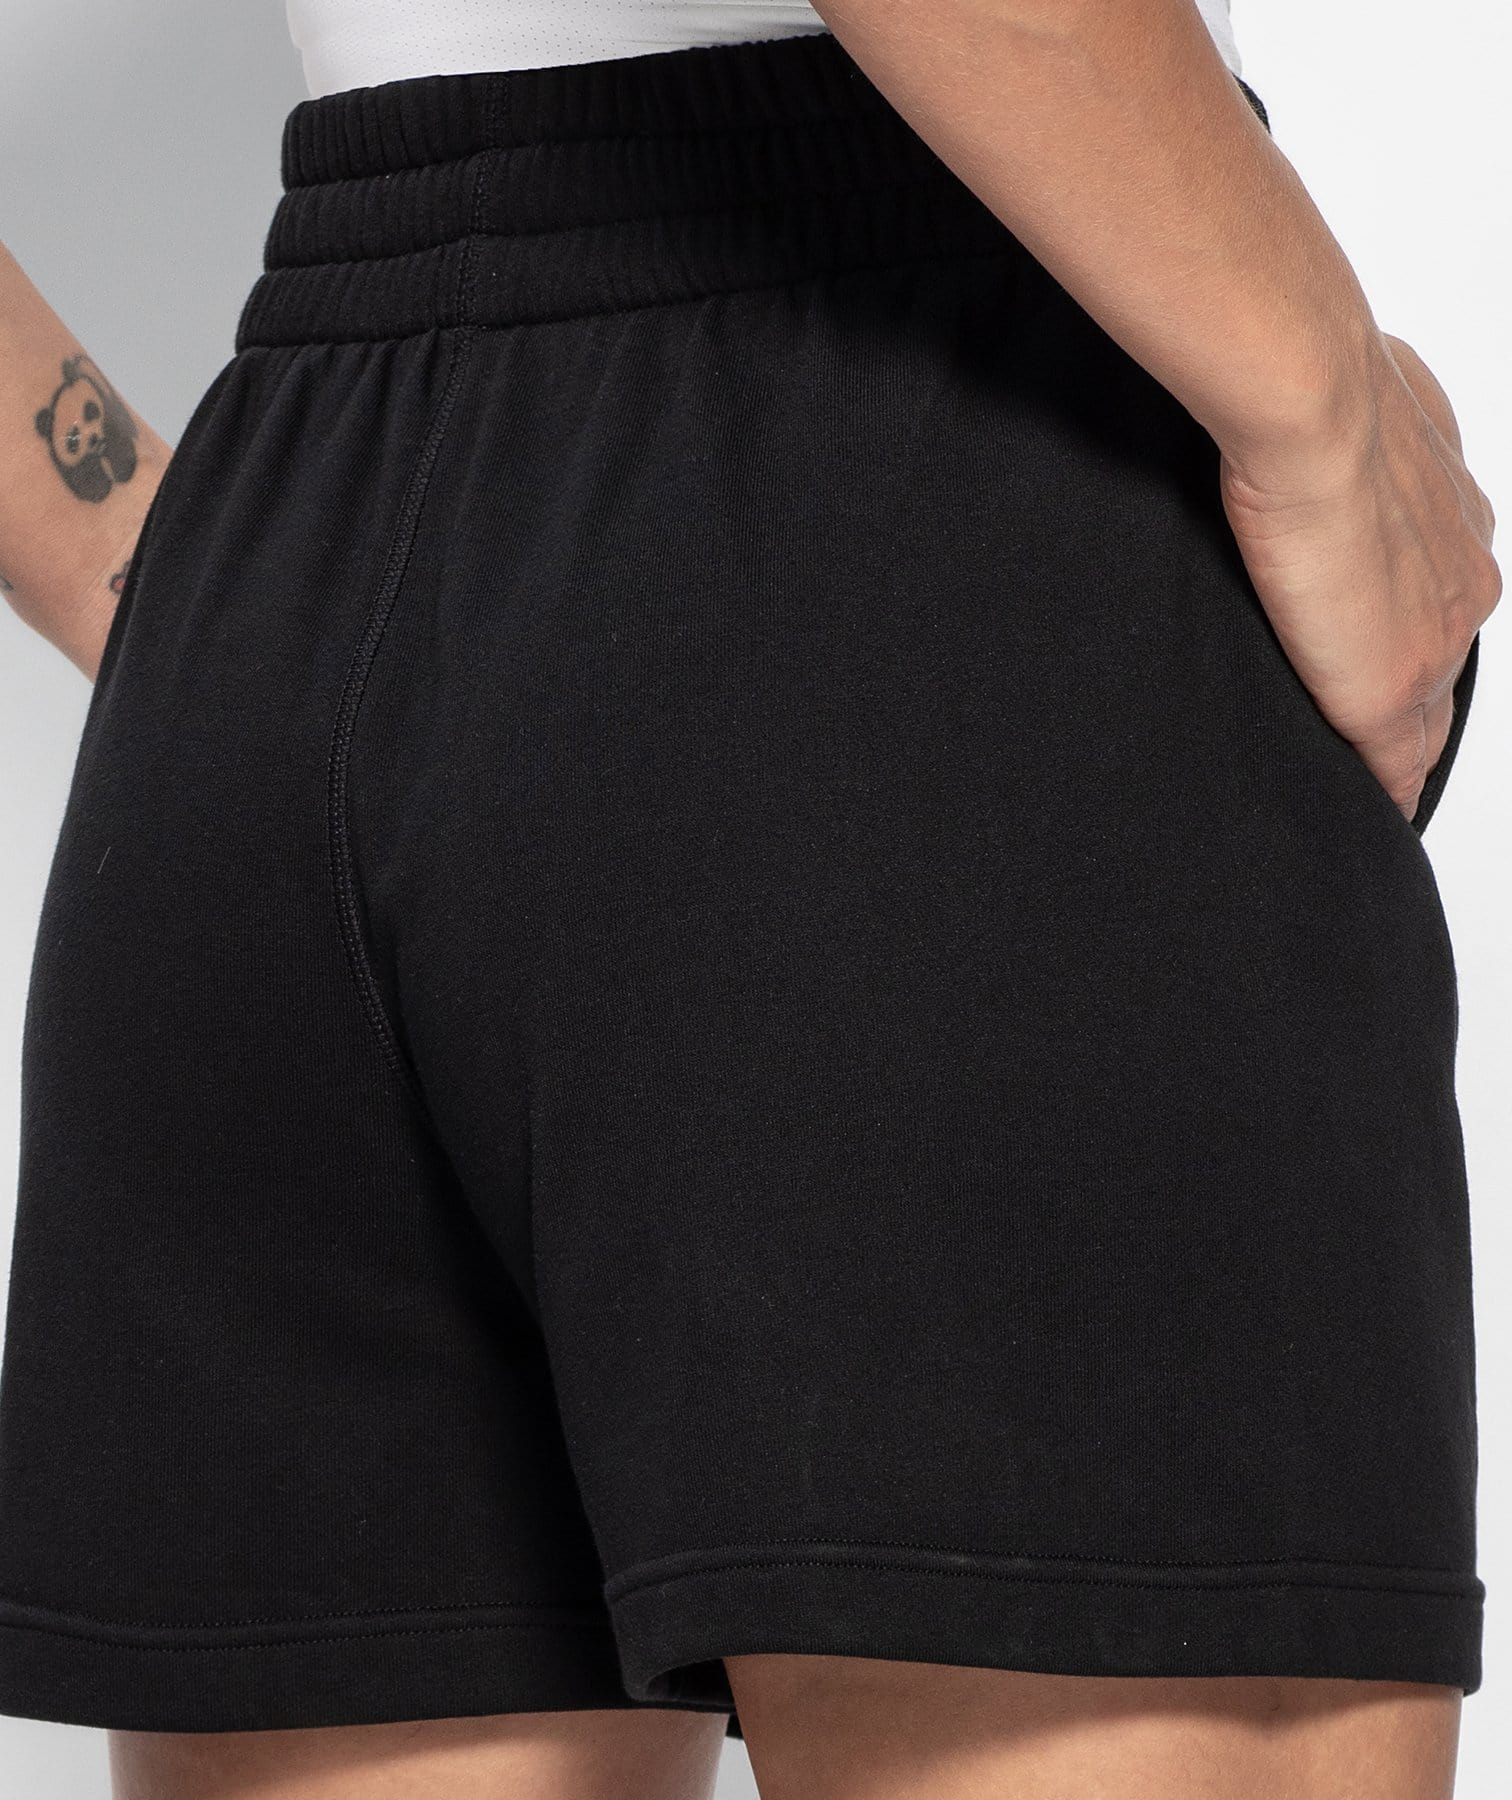 Drawcord Loose Shorts - Black - Firm Abs Fitness